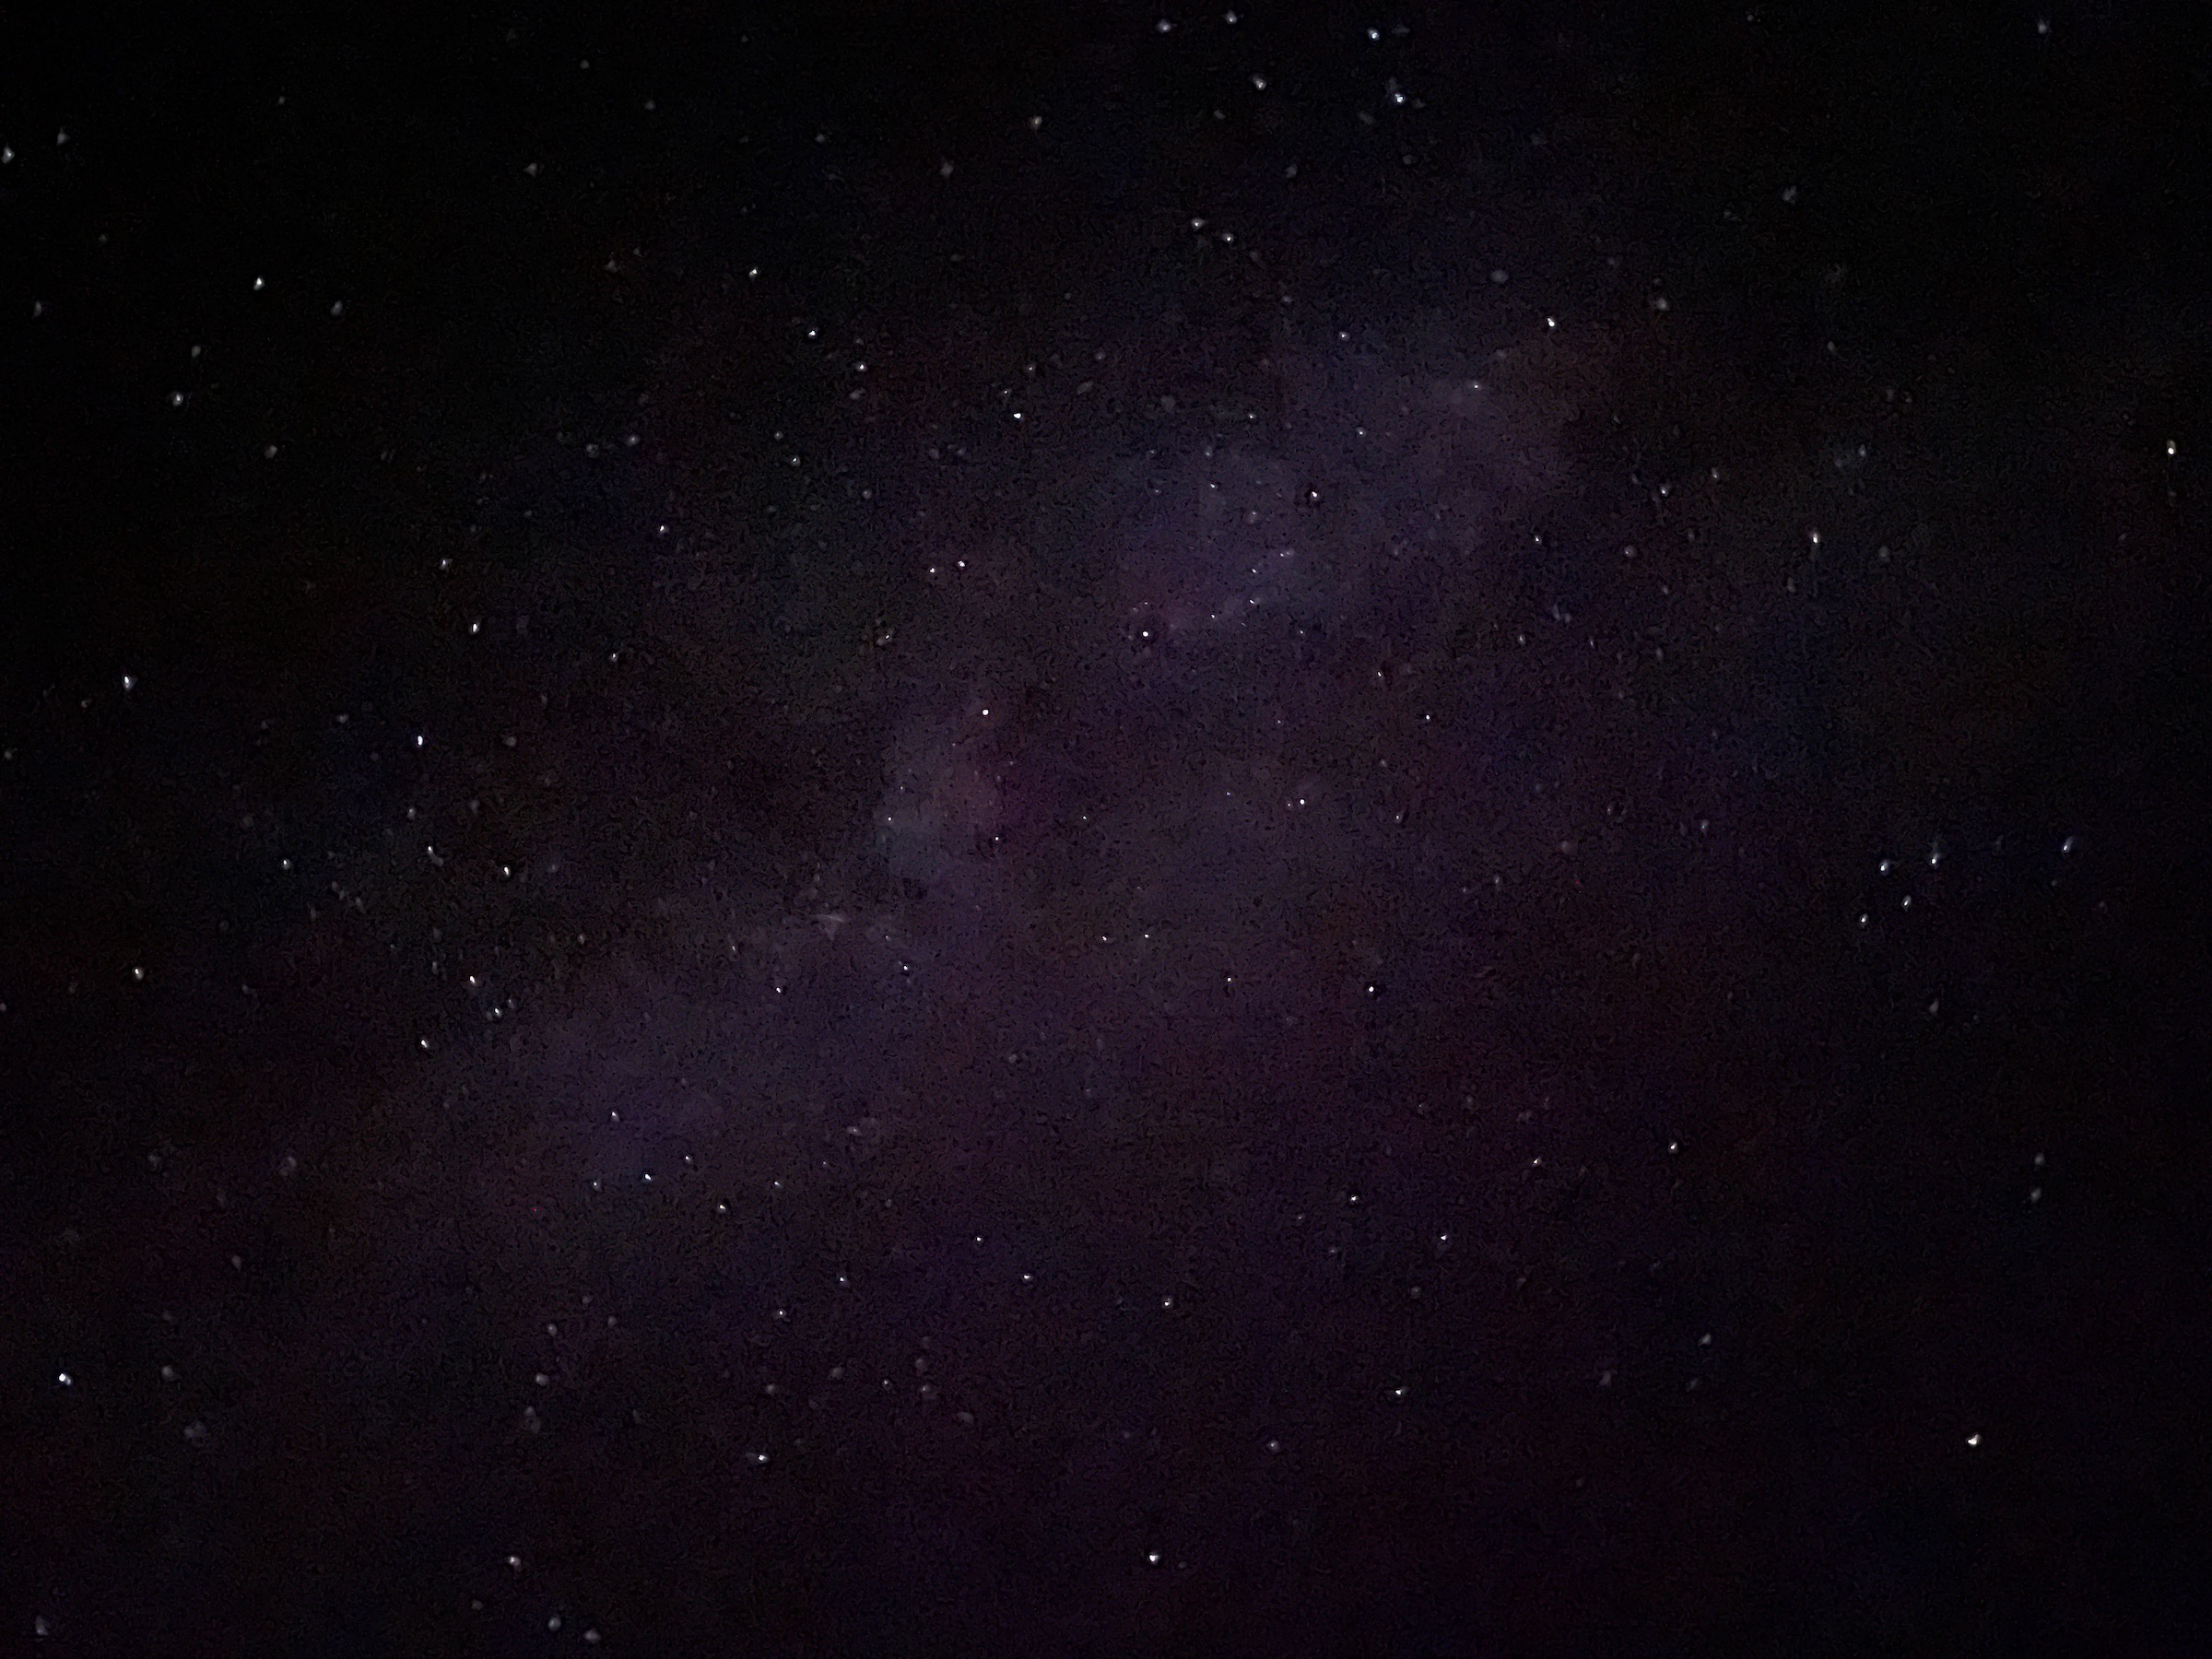 Stars and Milky Way from My Phone - Stargazing at the Bryce Canyon